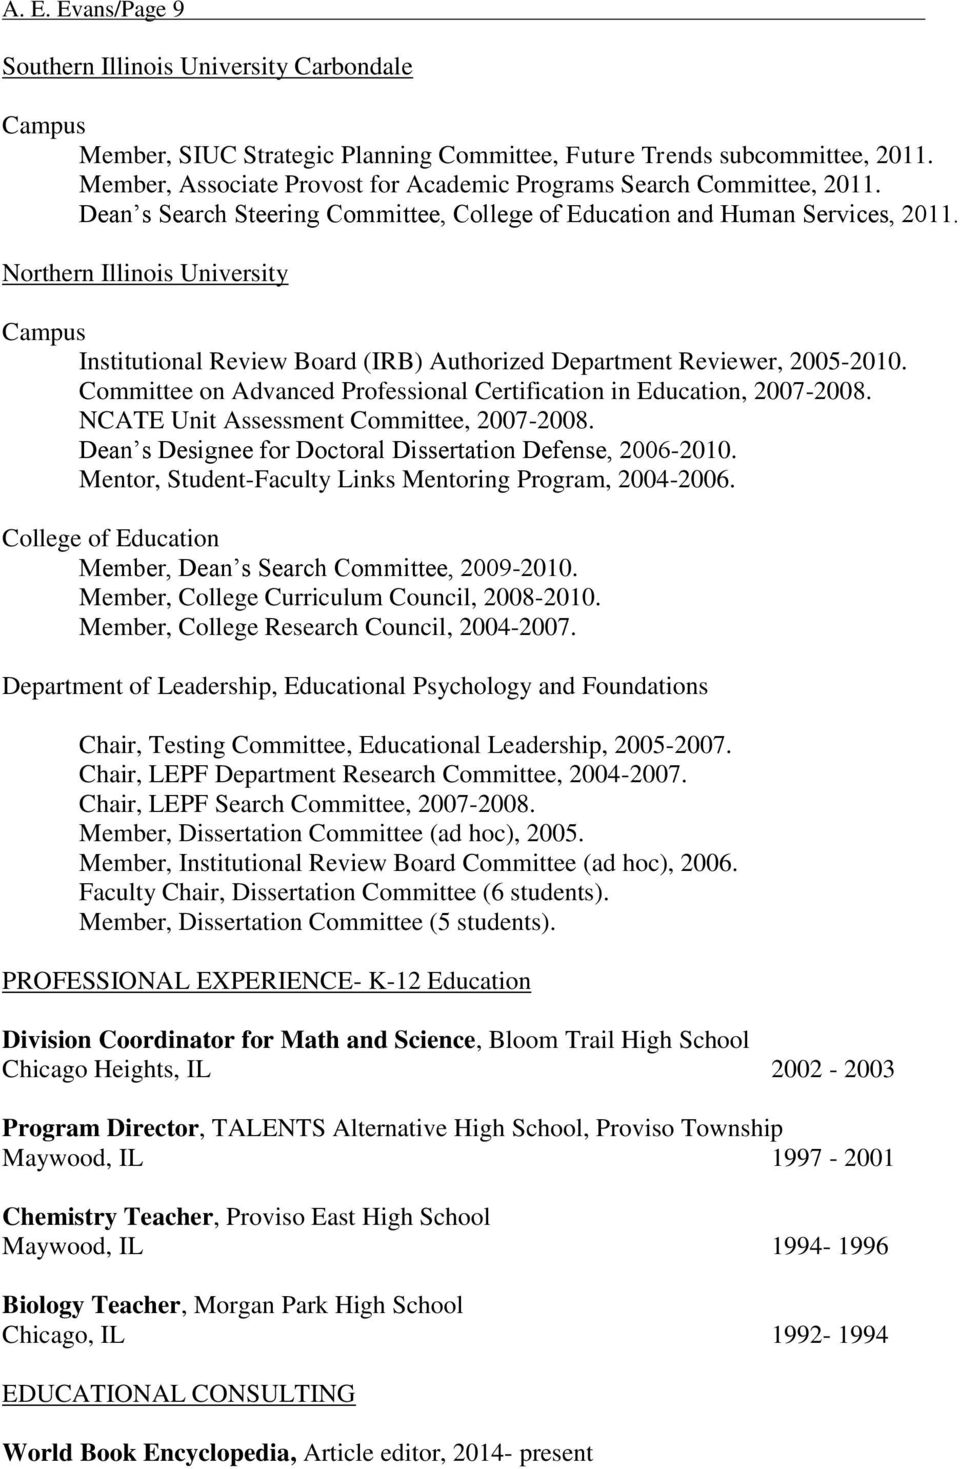 Northern Illinois University Campus Institutional Review Board (IRB) Authorized Department Reviewer, 2005-2010. Committee on Advanced Professional Certification in Education, 2007-2008.